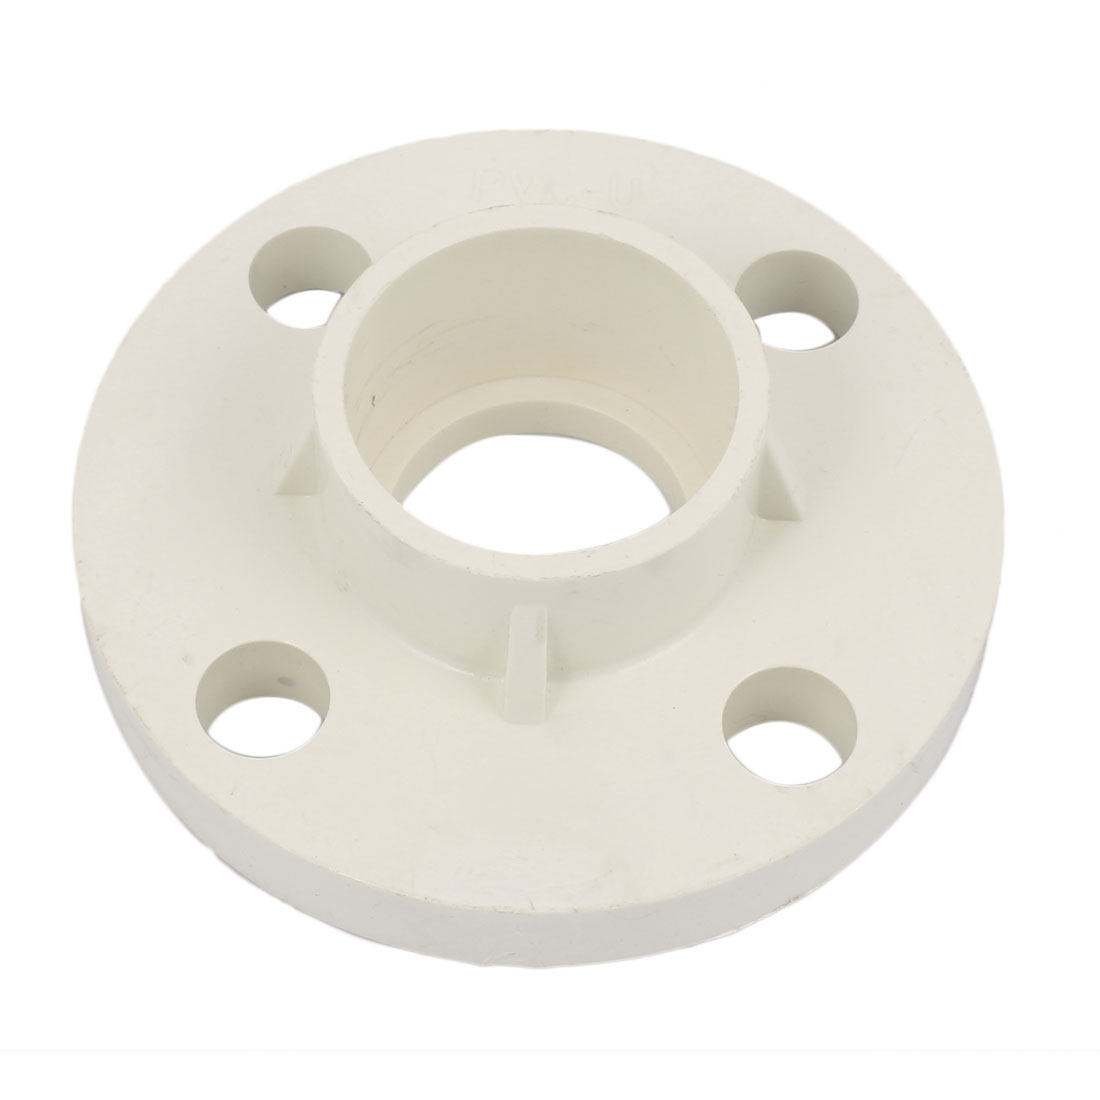 50mm Dia Straight Flange Type PVC-U Pipe Connector Adapter Fitting White